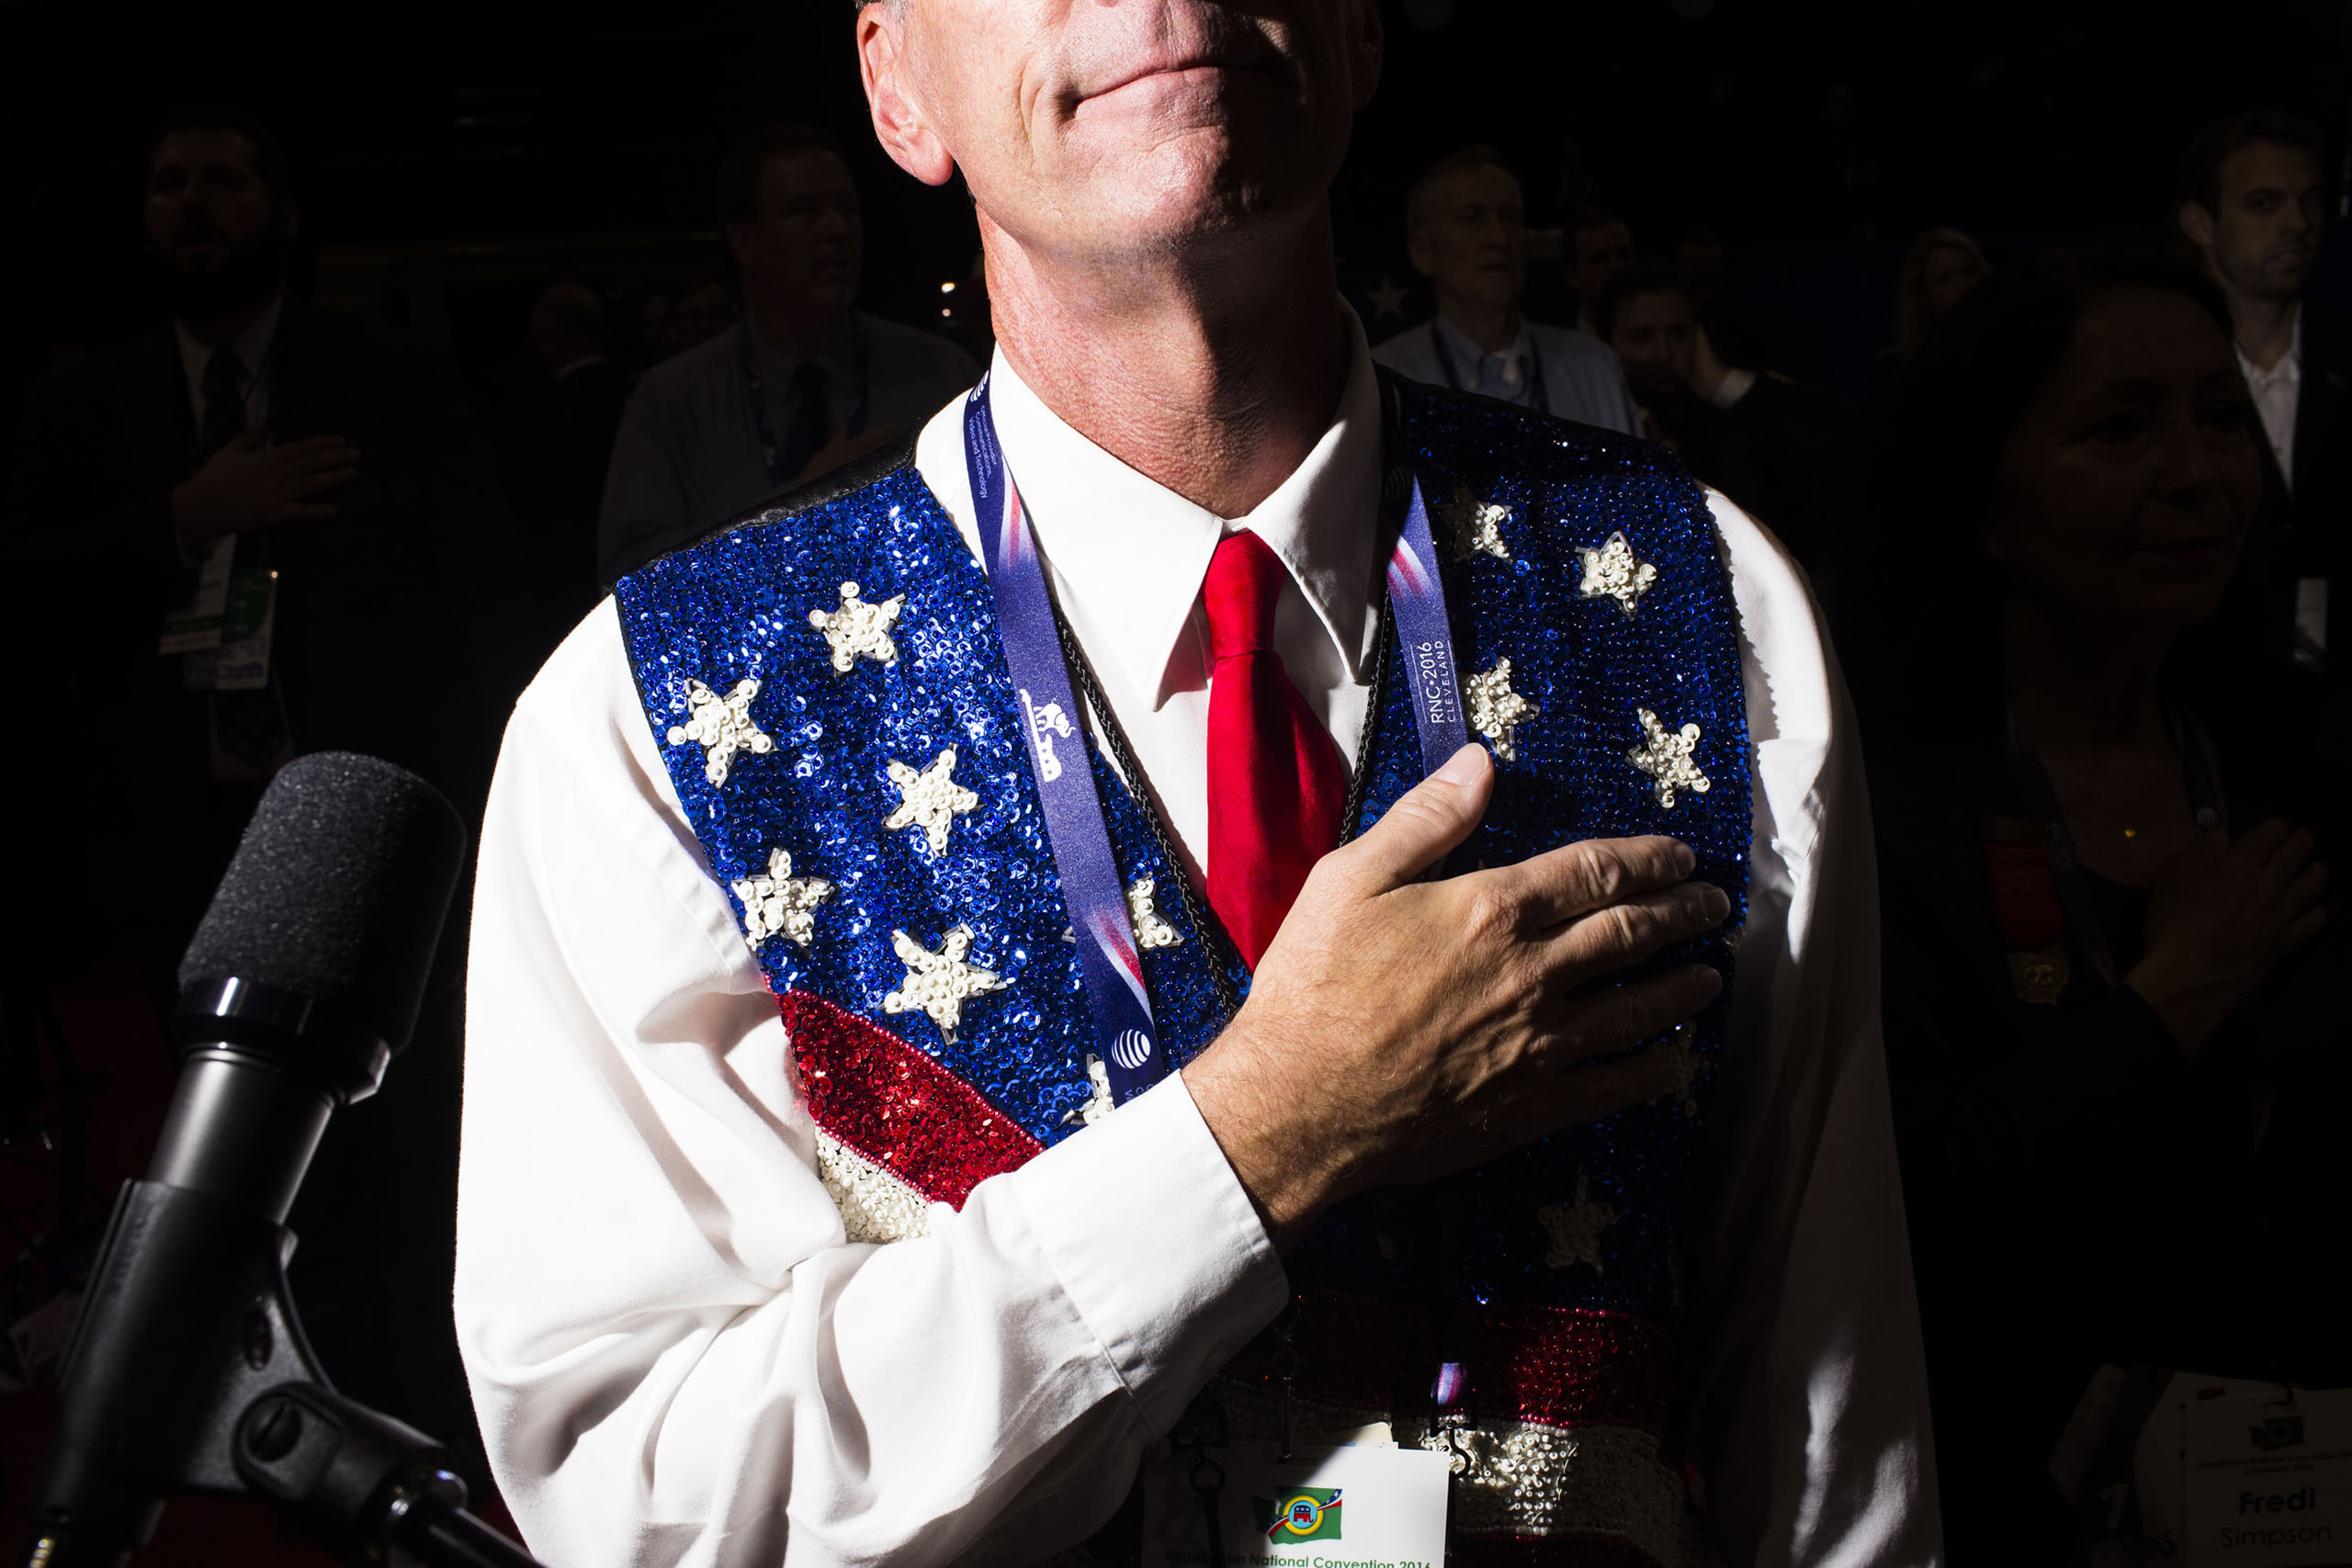 Scenes from the floor at the Republican National Convention, July 18, 2016 in Cleveland.